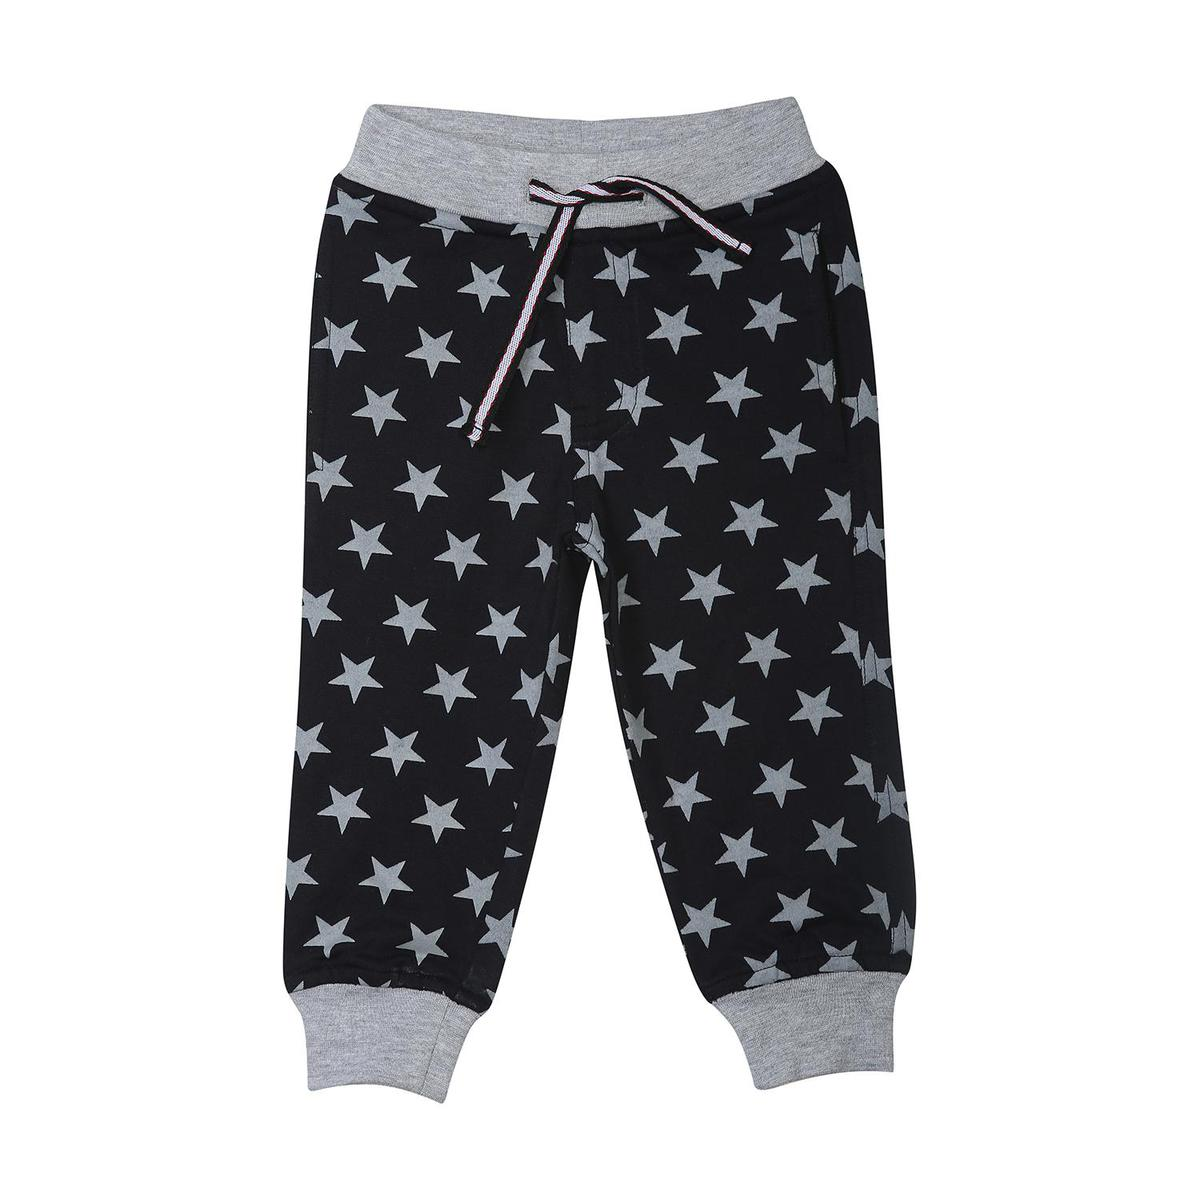 612 League - Black Colored Printed Star Aop Knits Joggers For Baby Boys